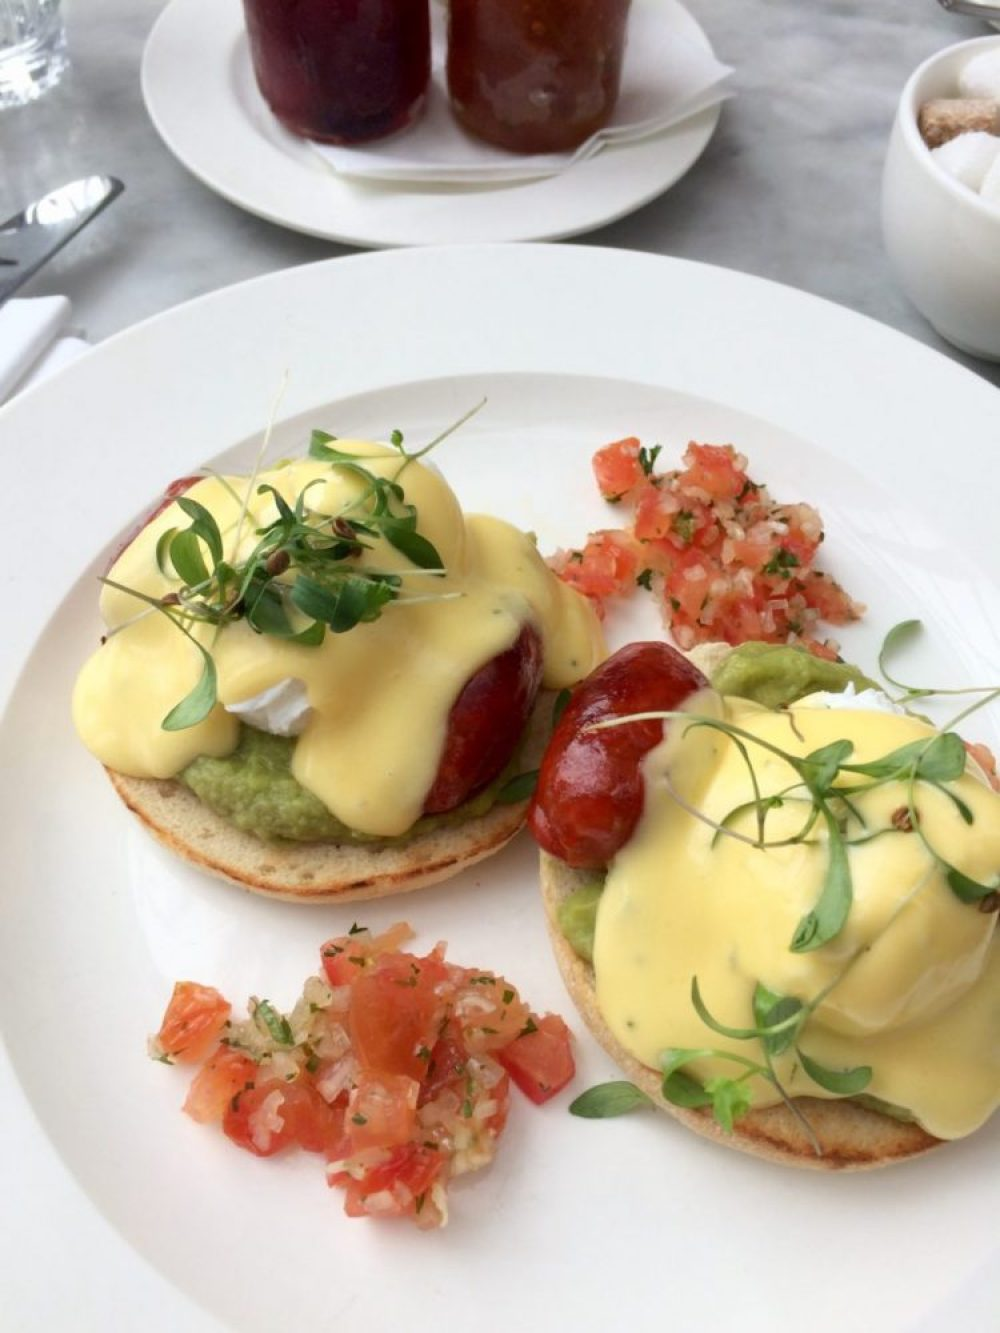 Huevos Benedictos at the Bourne and Hollingsworth Buildings Restaurant, Clerkenwell, London